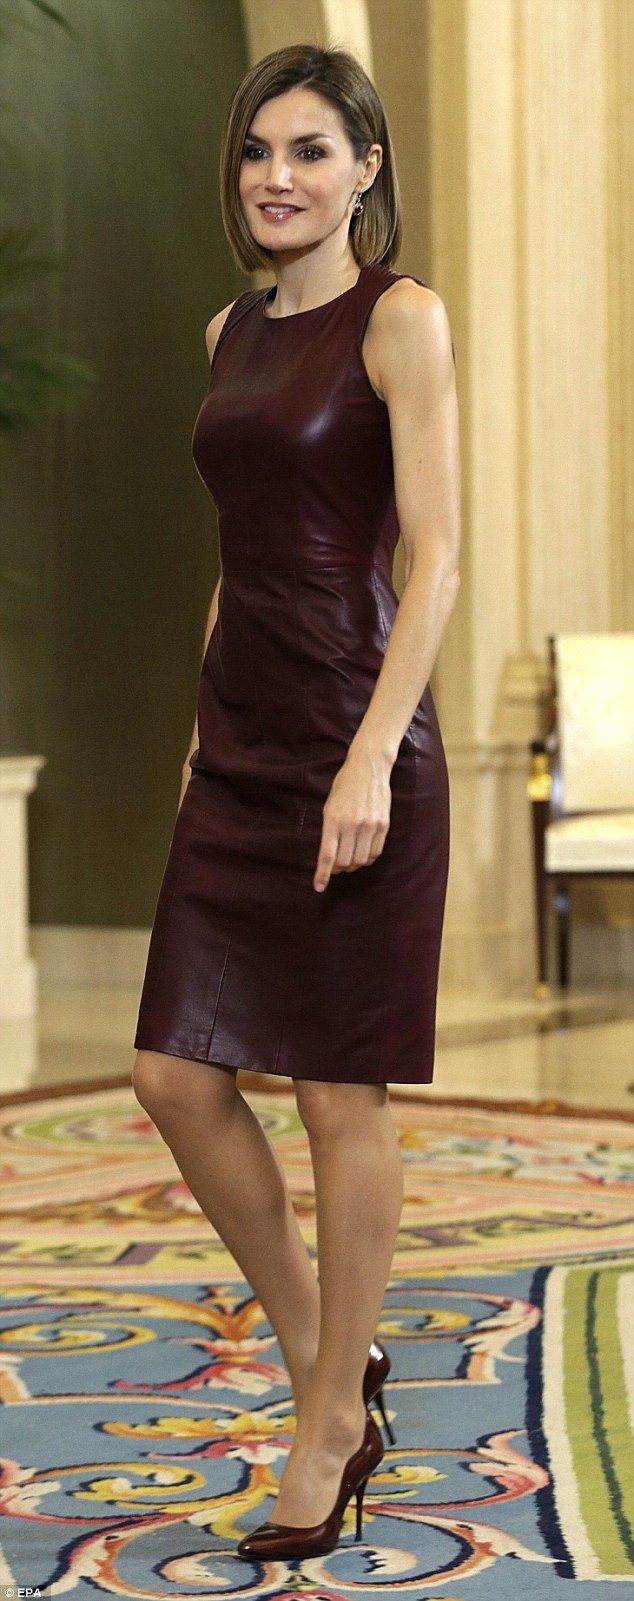 Giving the thrifty Duchess of Cambridge a run for her money, Queen Letizia has stepped out in her second recycled outfit just three days